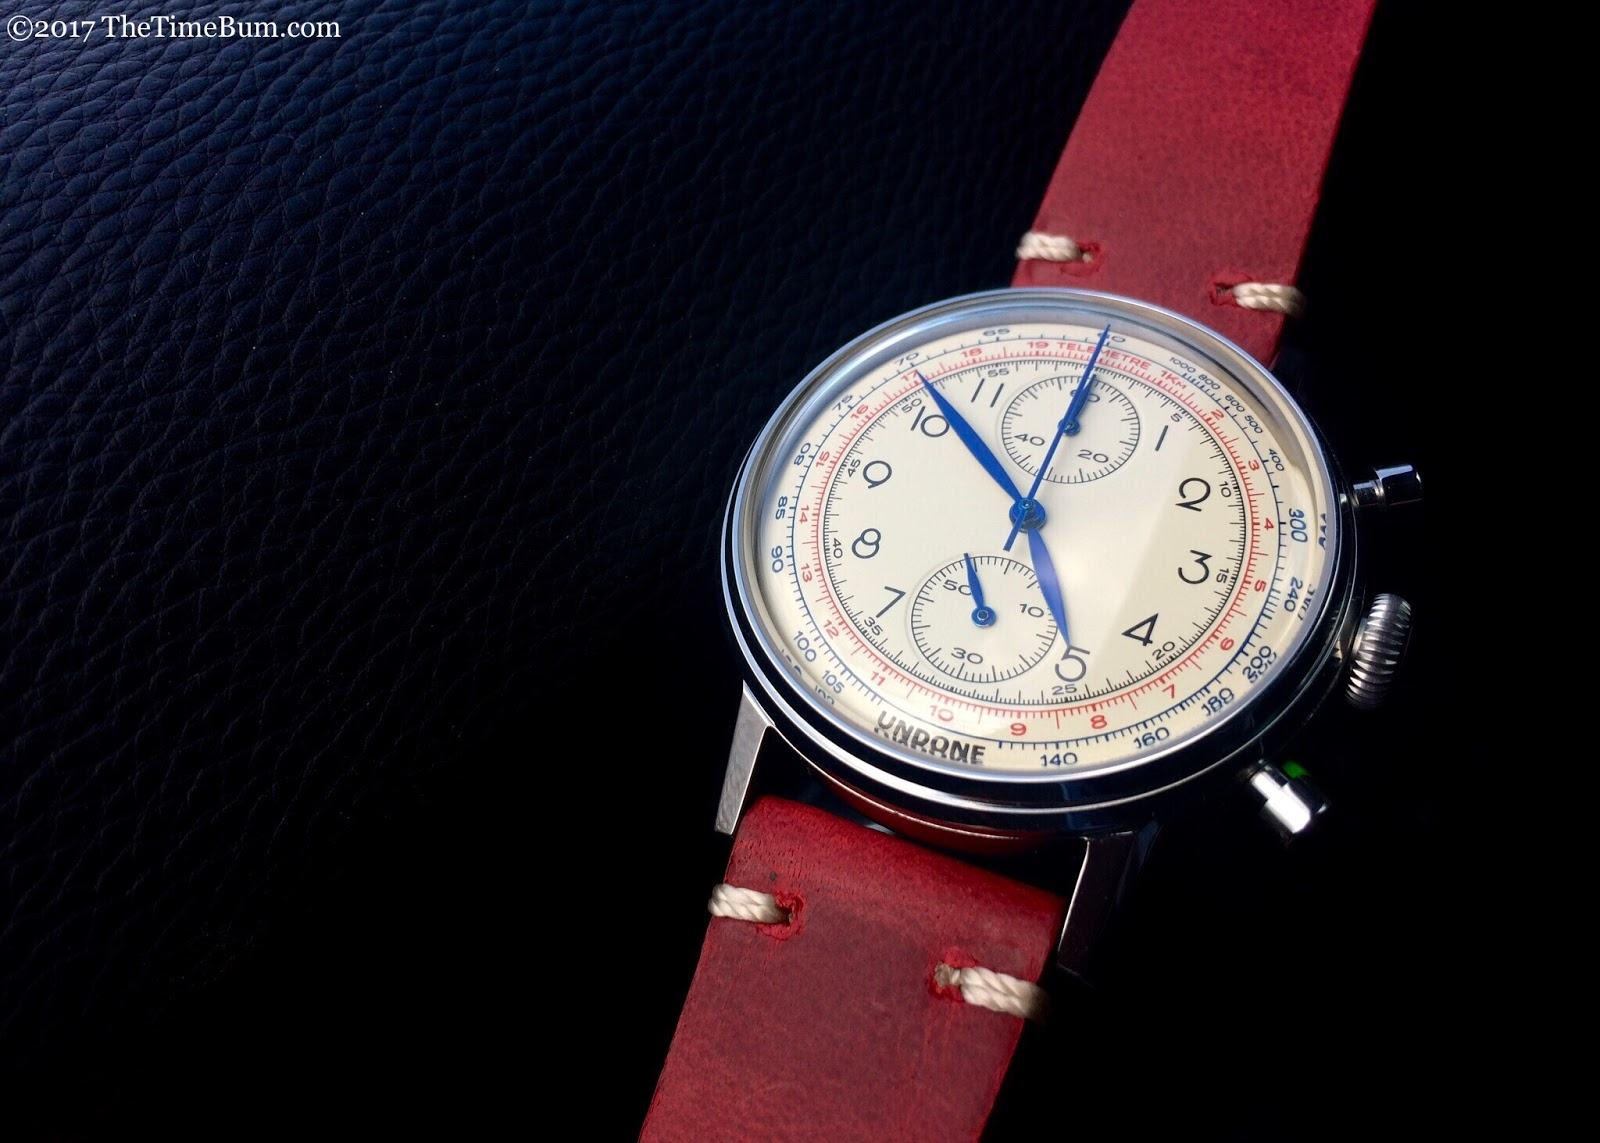 Undone Killy Urban Chronograph